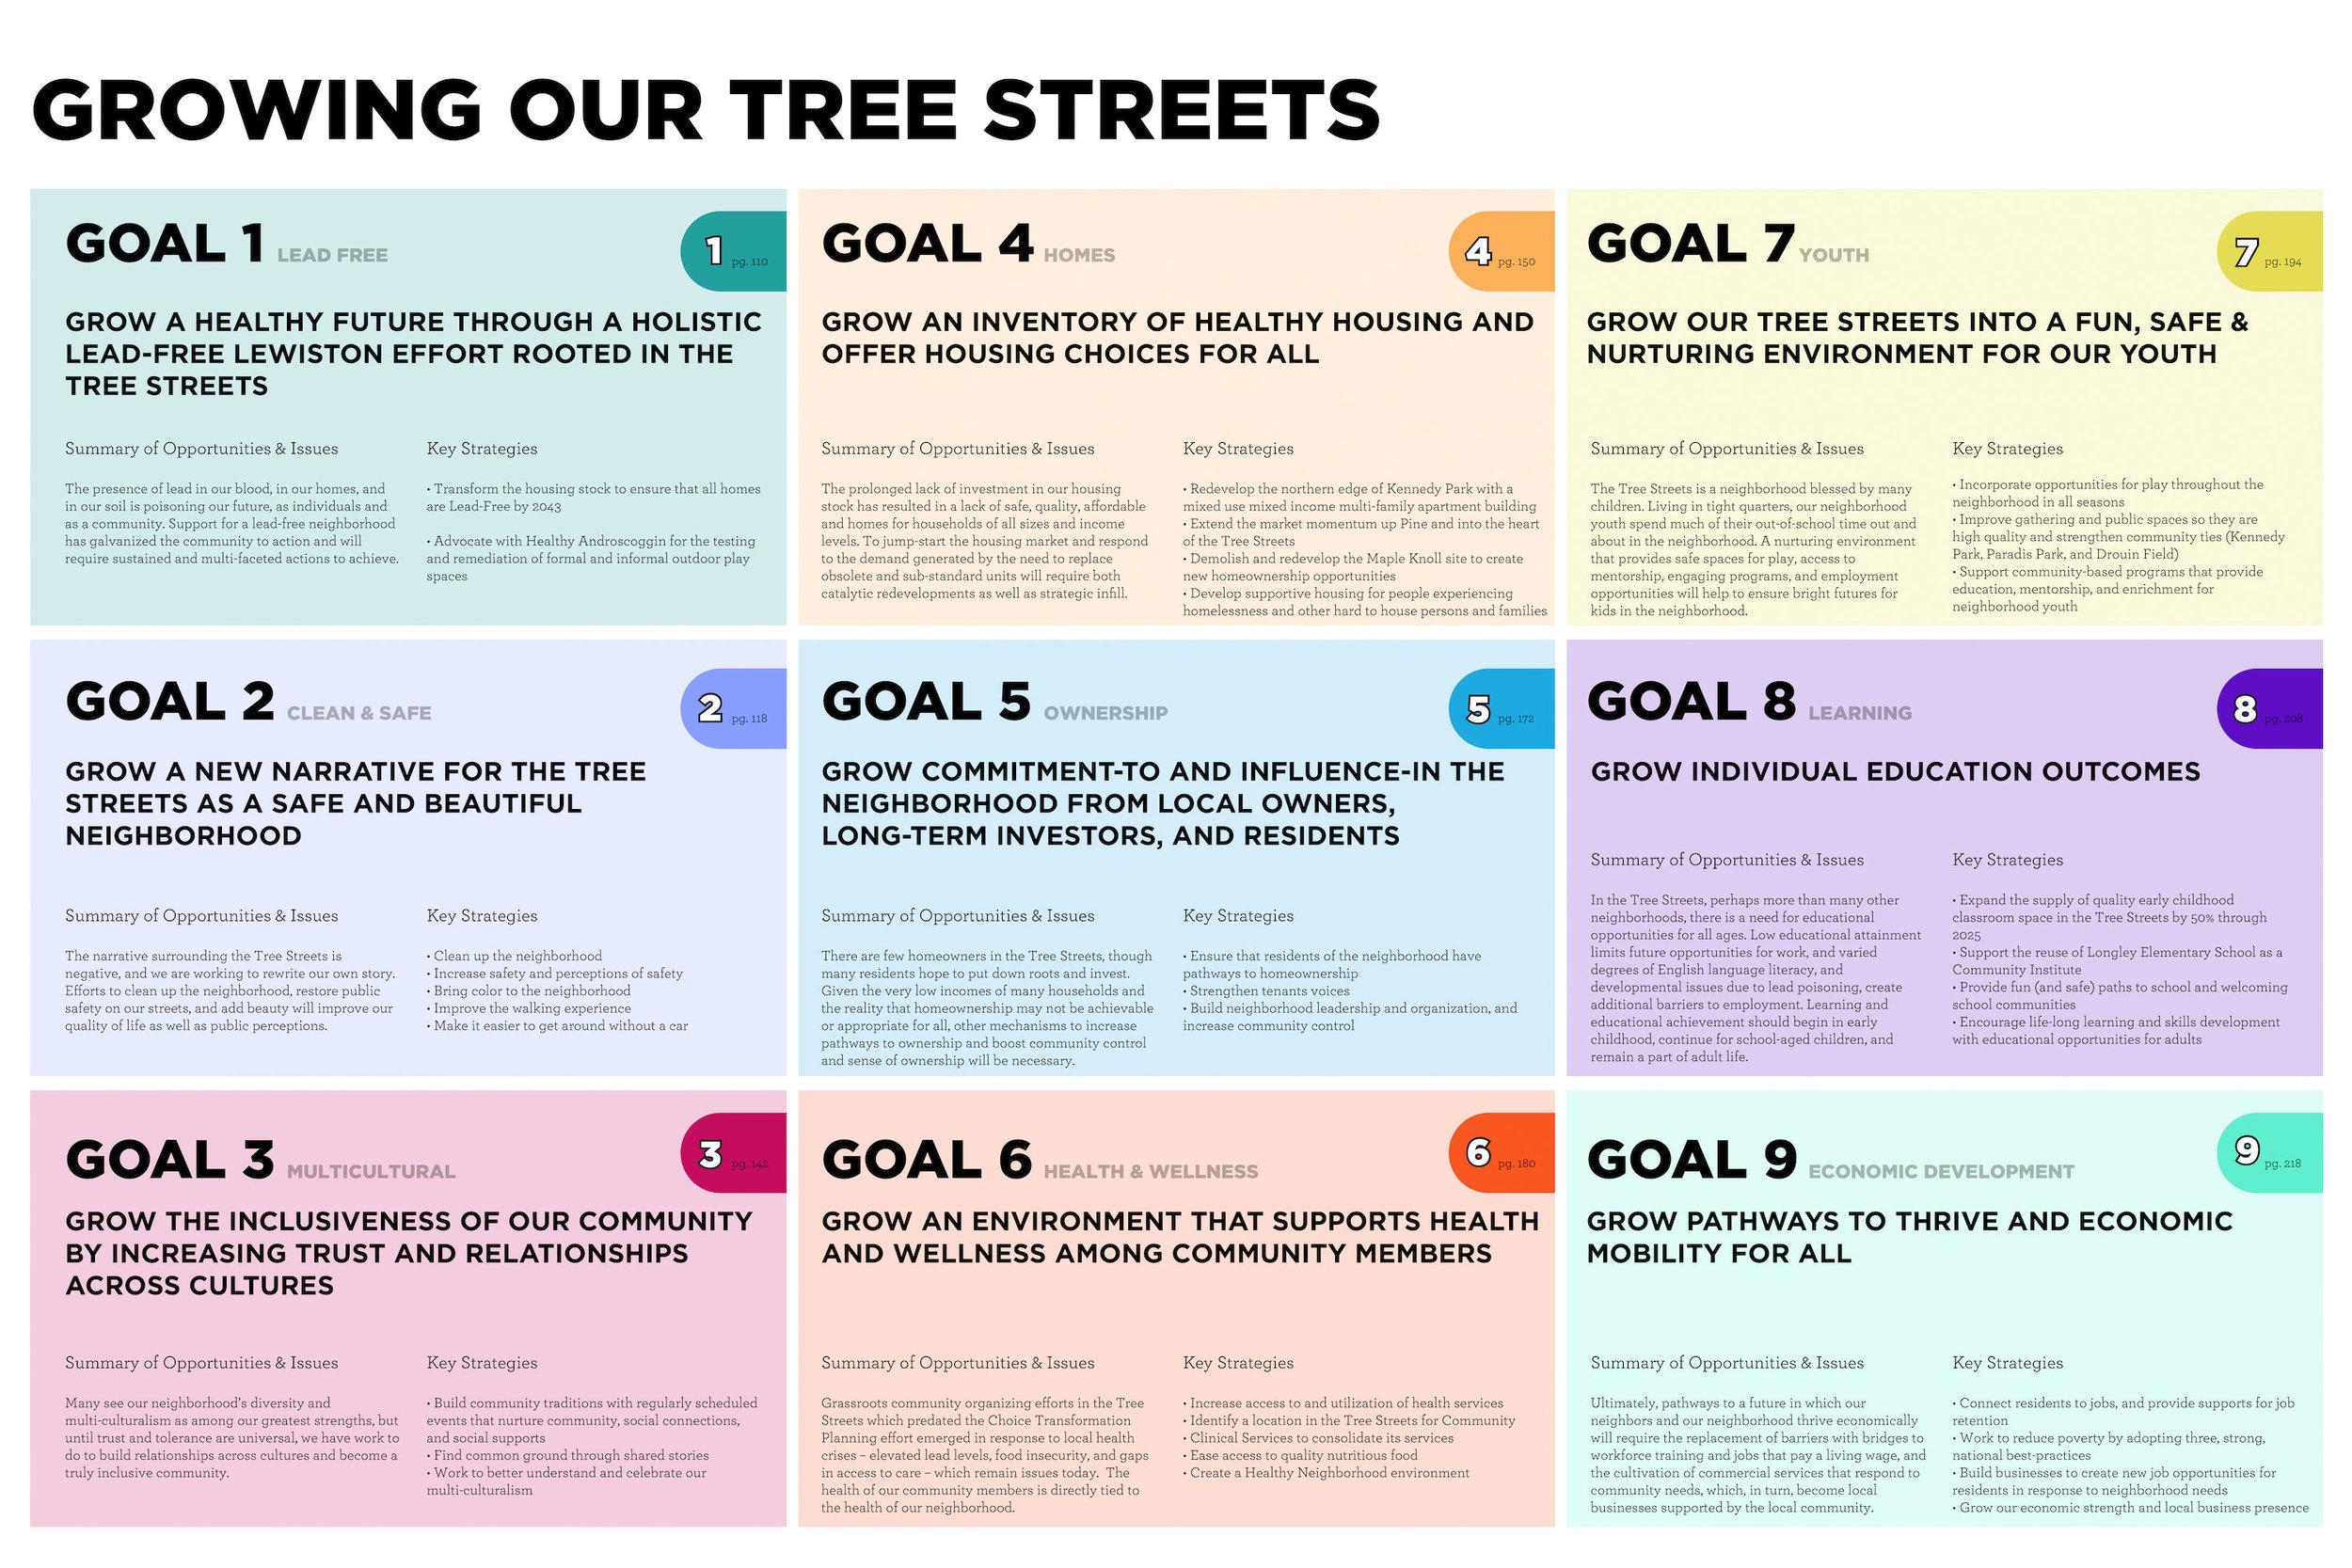 Download our Goals Sheet     Learn more about the Growing Our Tree Streets goals, and what each of them mean.